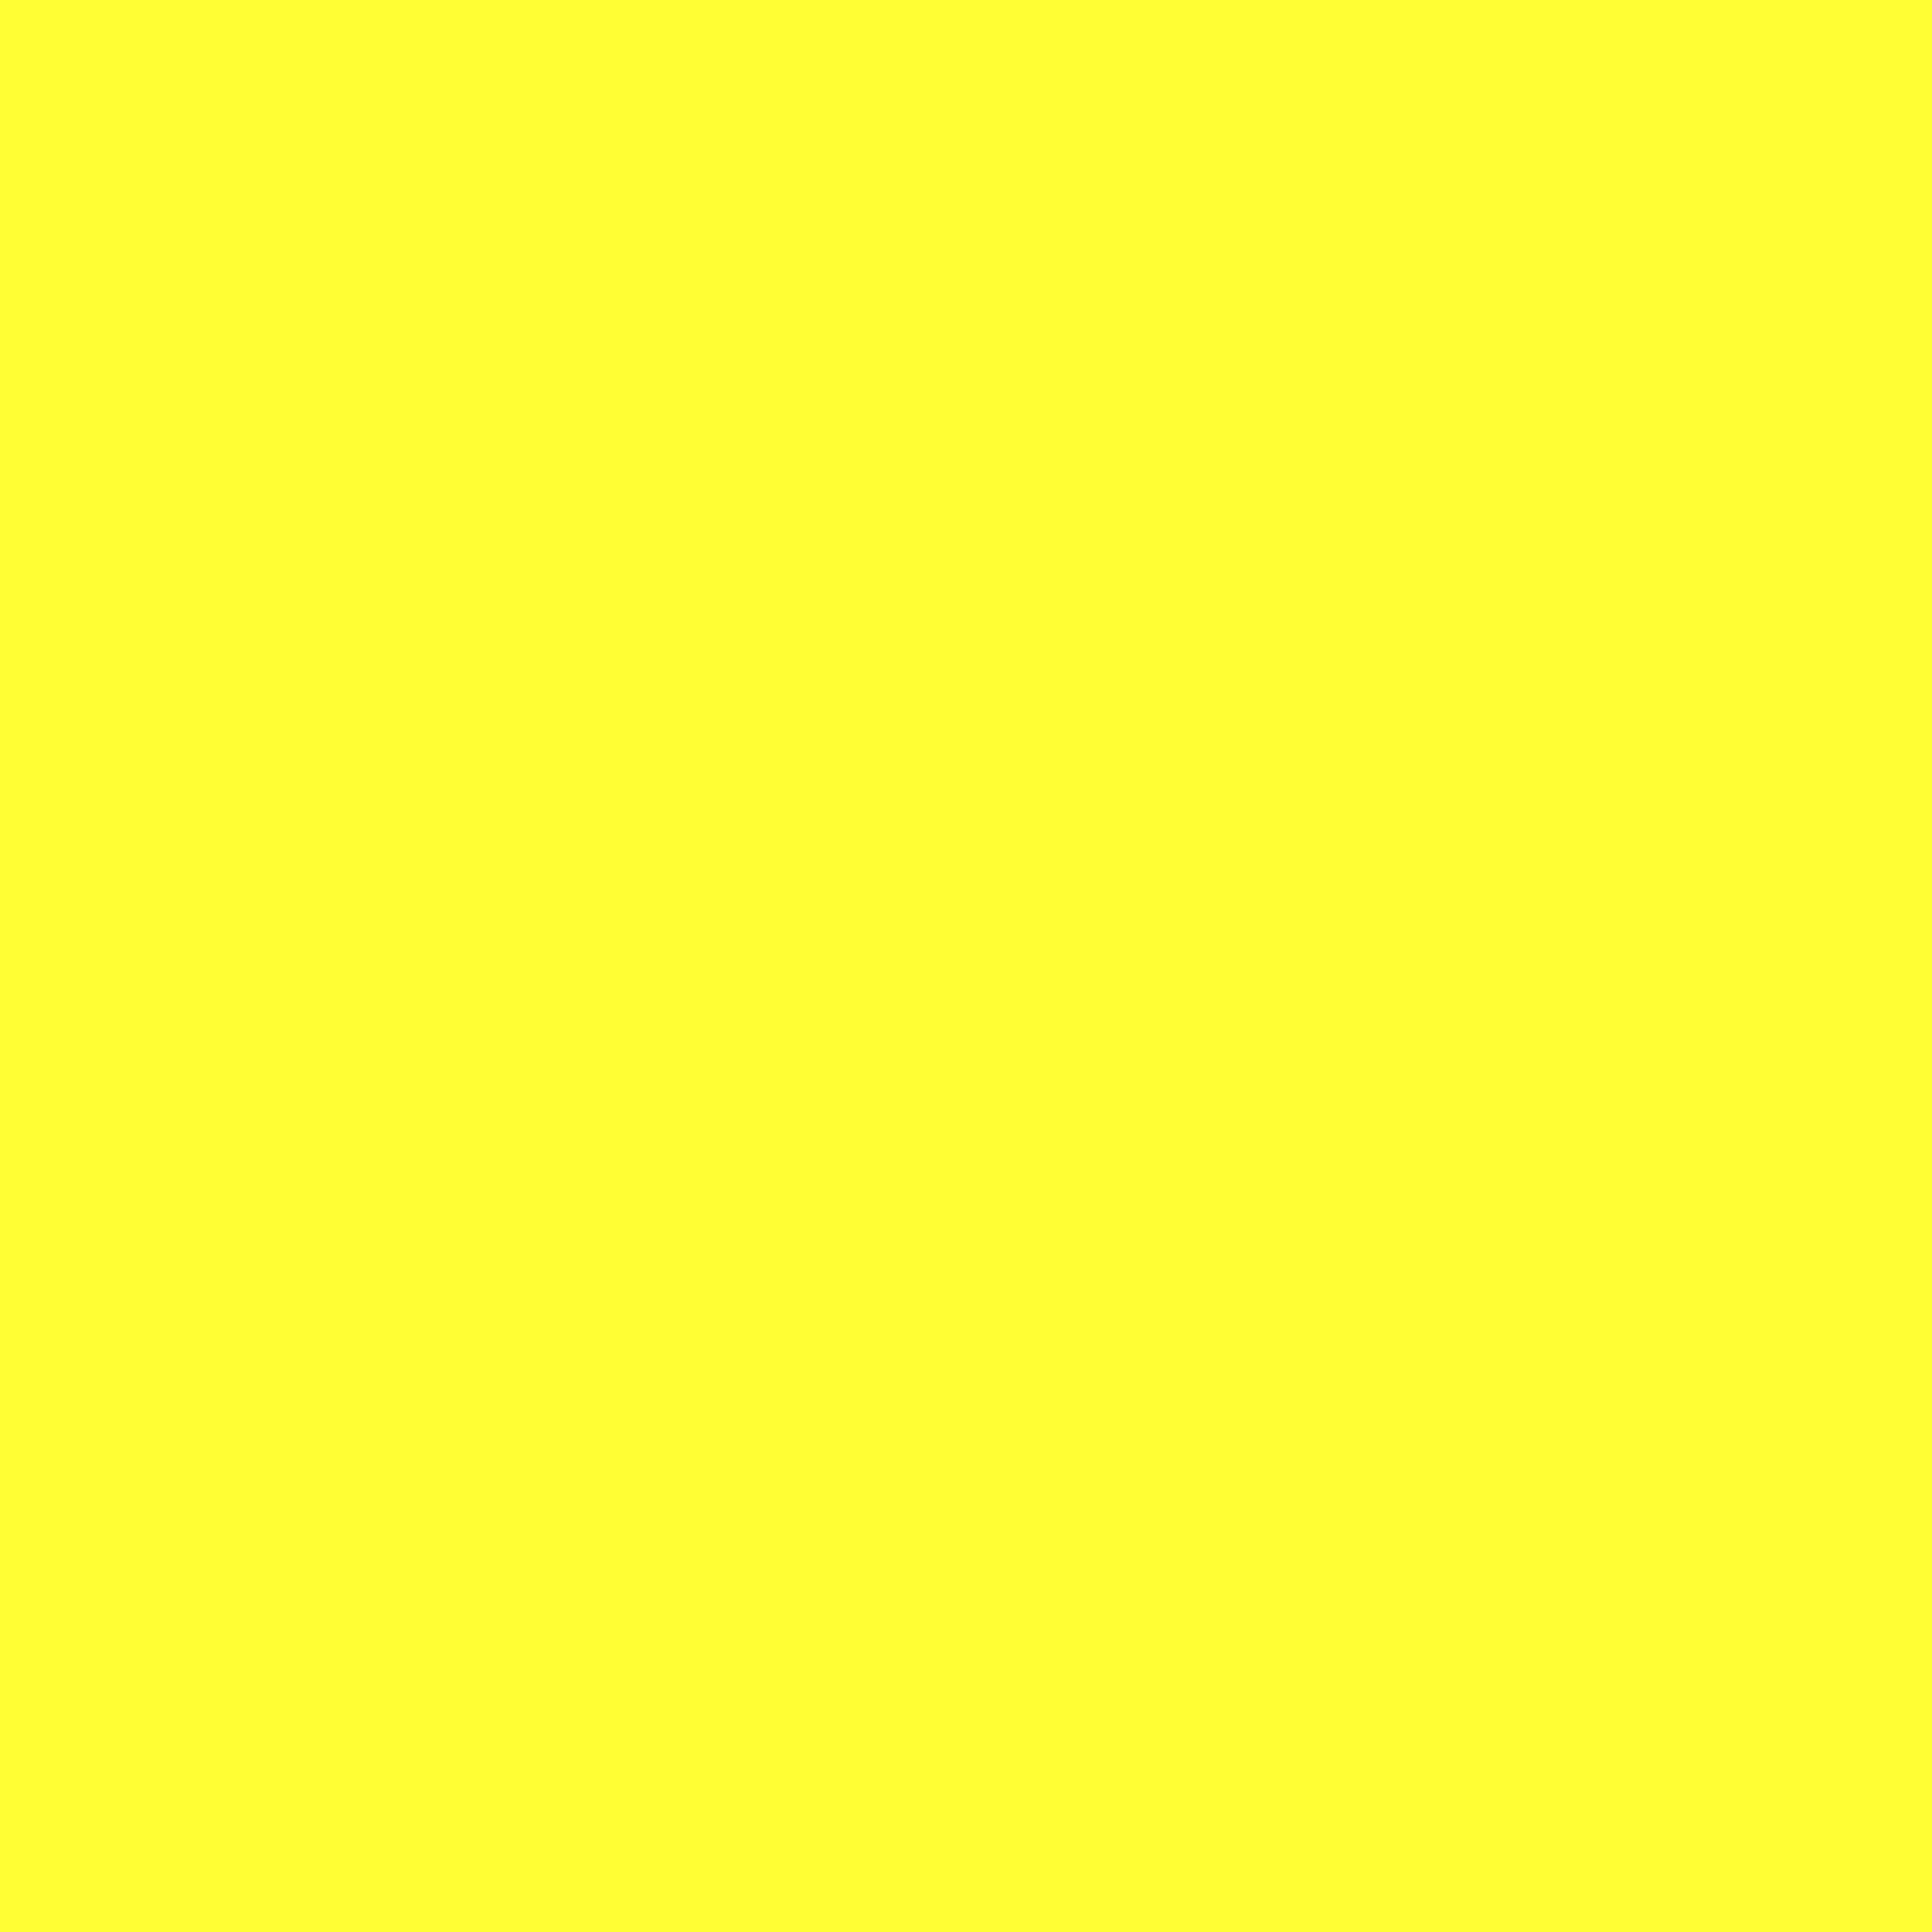 2048x2048 Yellow RYB Solid Color Background